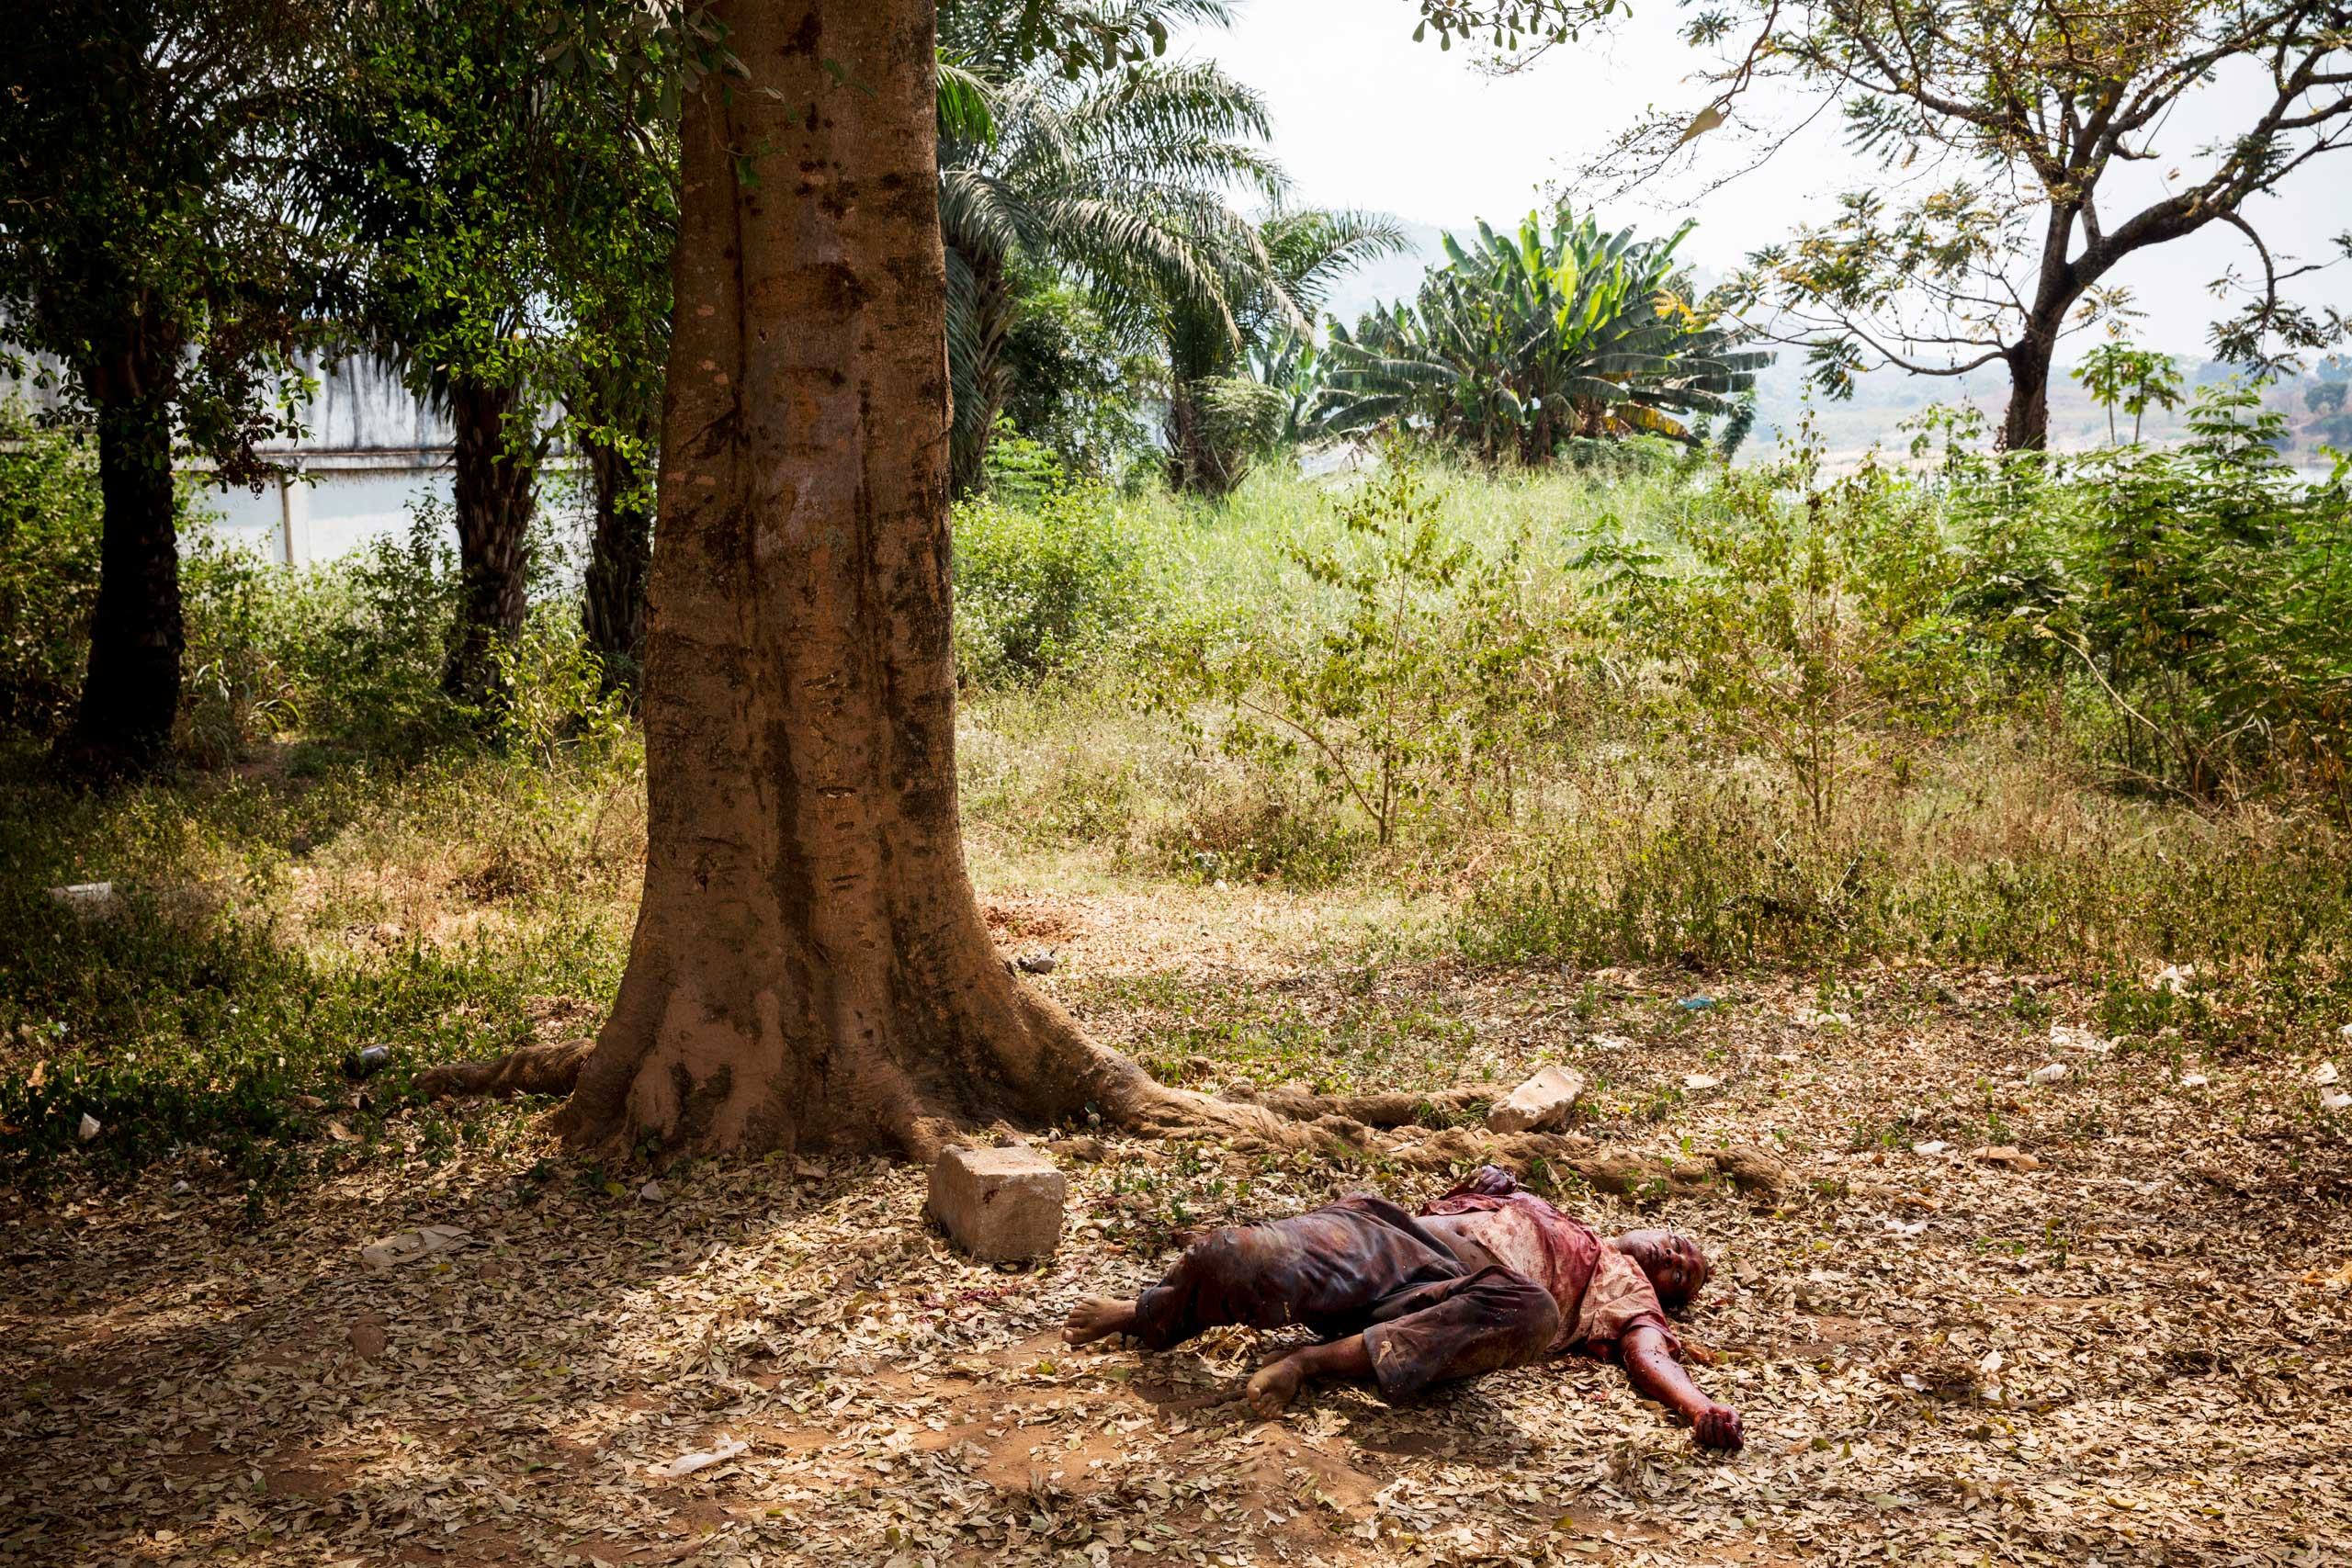 A wounded Muslim man lies on the ground after being attacked by dozen of angry Christians, who claimed he was a member of Séléka. He is protected by African and French soldiers but will later die from his wounds before a medic arrives. Bangui, Central African Republic. Jan. 22, 2014.